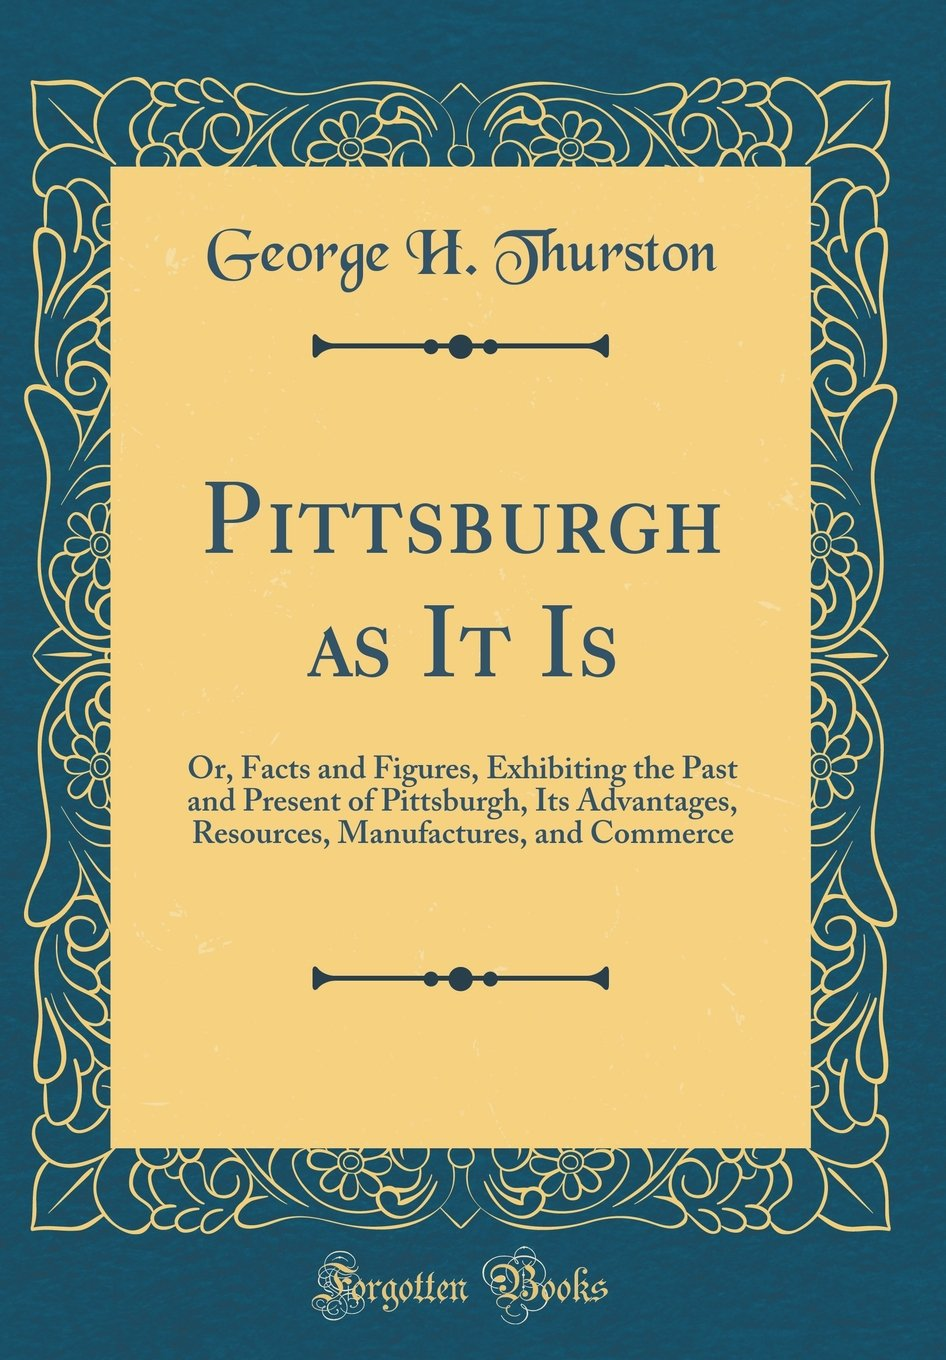 Pittsburgh as It Is: Or, Facts and Figures, Exhibiting the Past and Present of Pittsburgh, Its Advantages, Resources, Manufactures, and Commerce (Classic Reprint) PDF